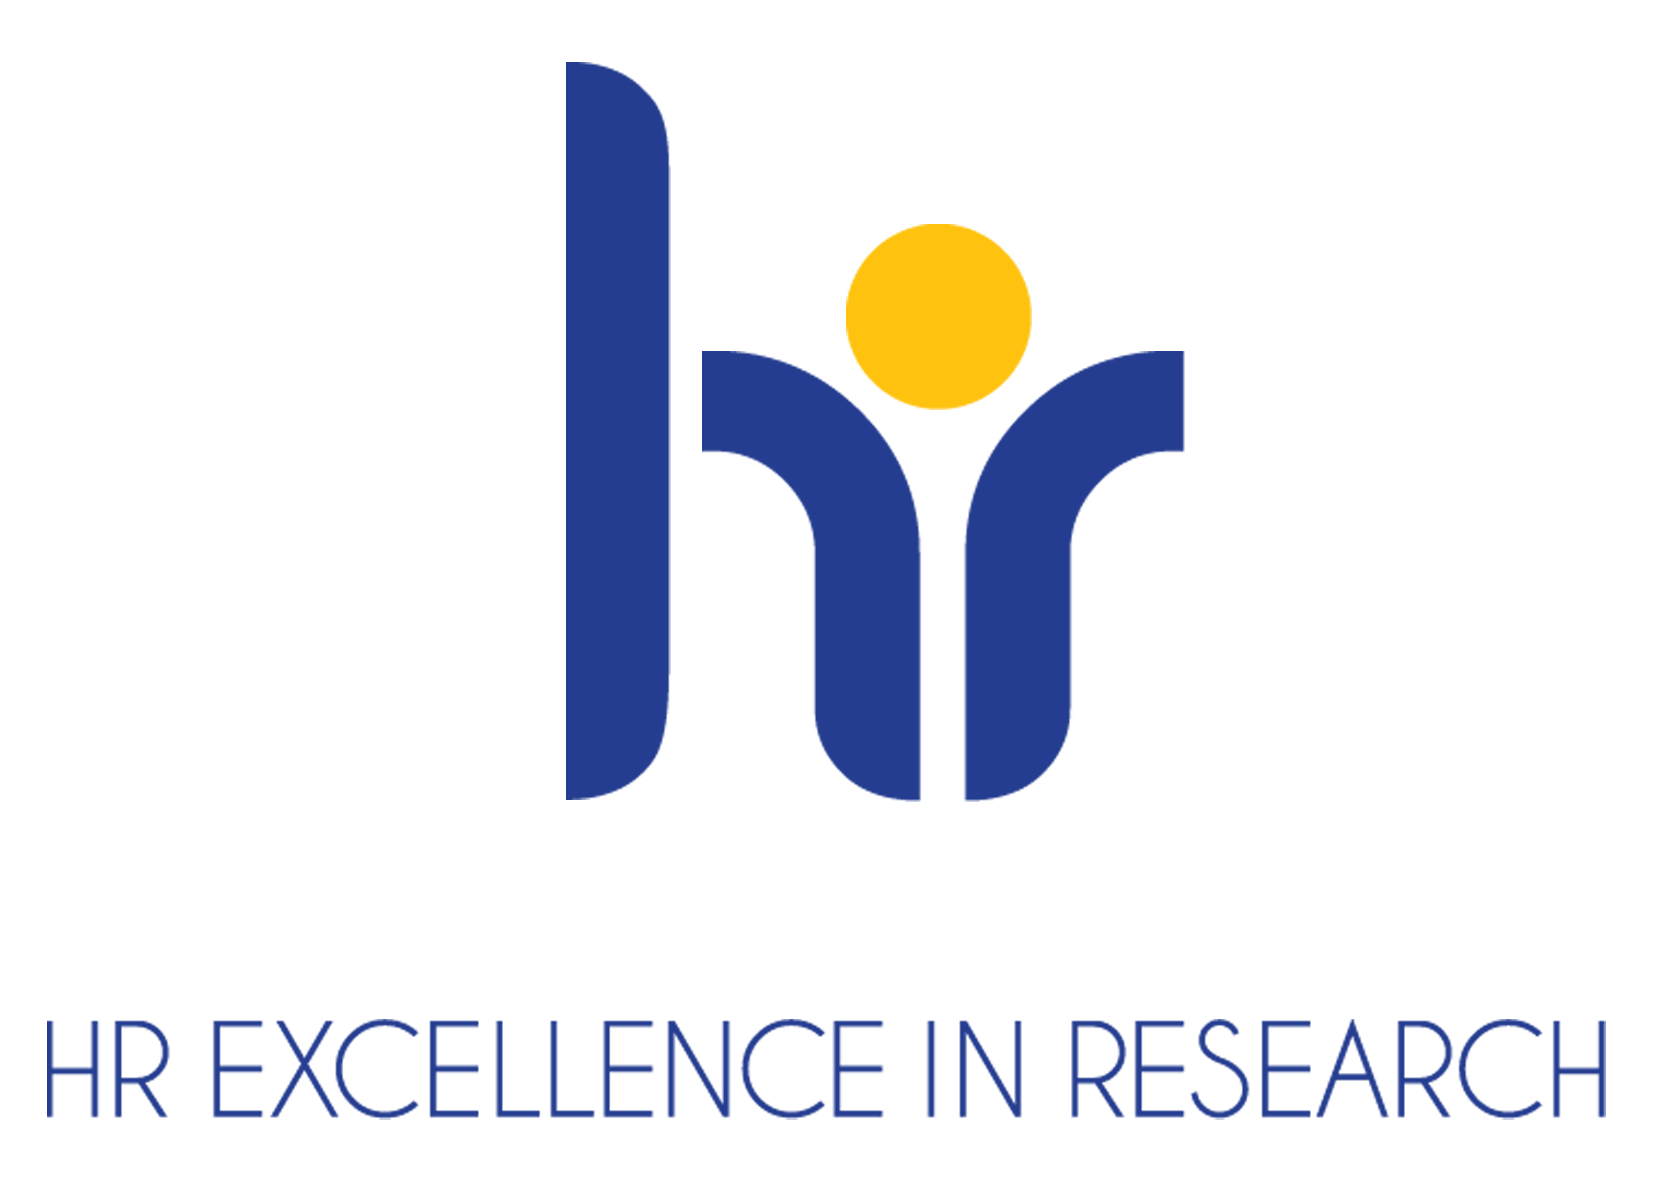 HR_Excellence